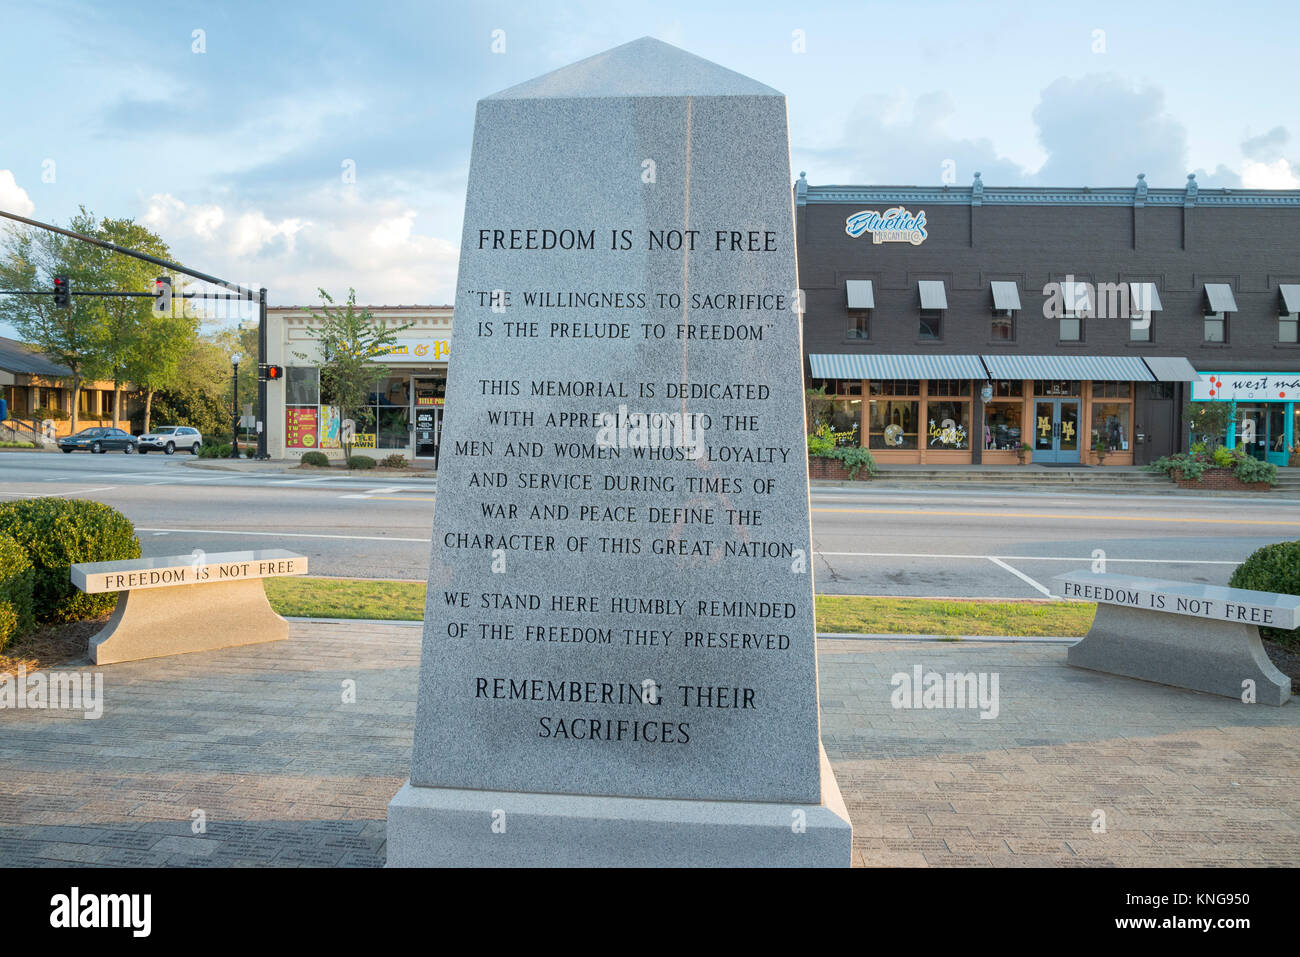 Memorial to Monroe County service members who gave their lives in times of war and peace for freedom is sitting - Stock Image